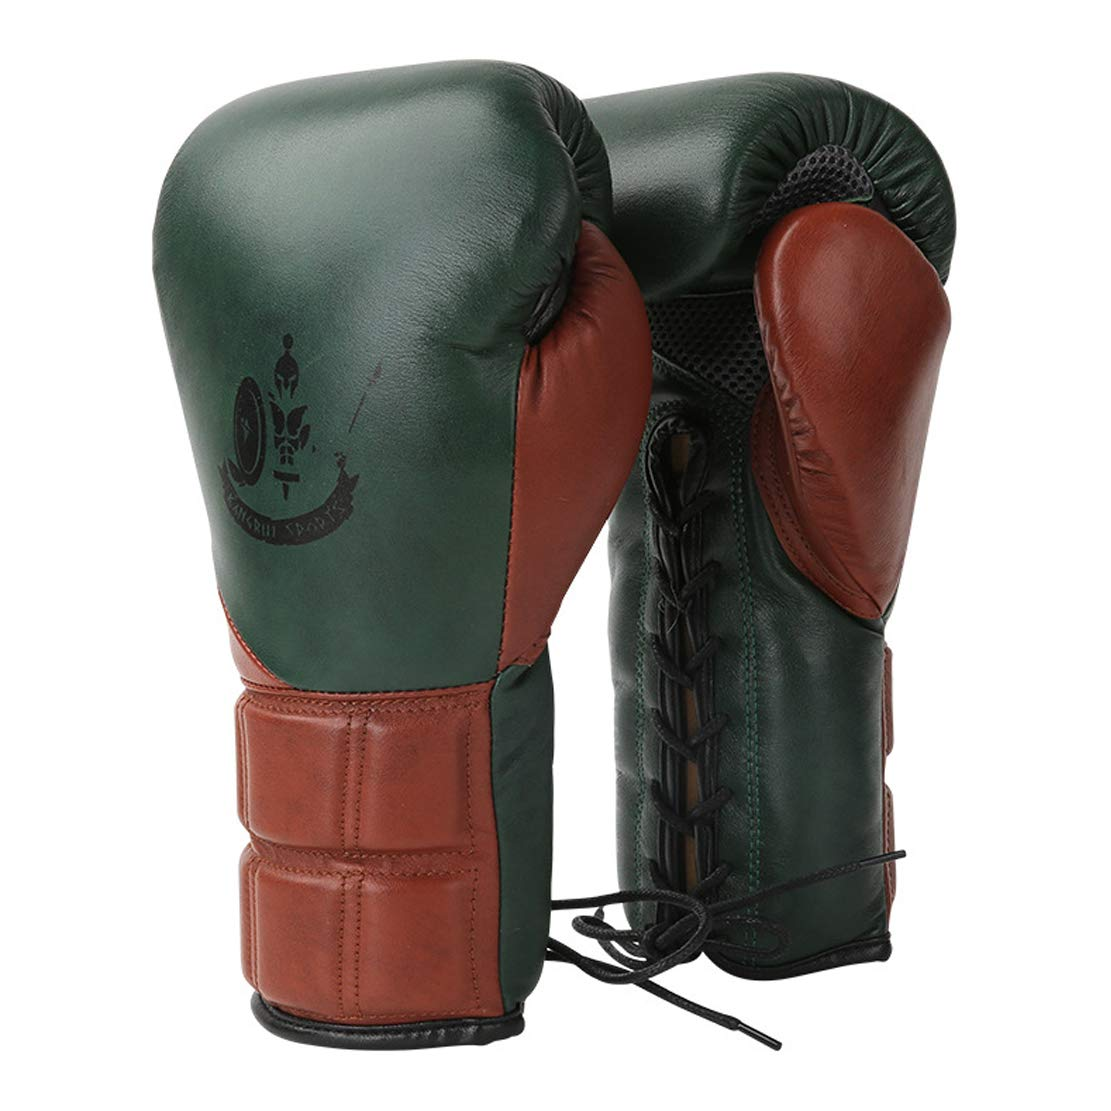 BRAZILIAN MMA Boxing Floor to Ceiling Punching Bag PU Leather Black,180cm